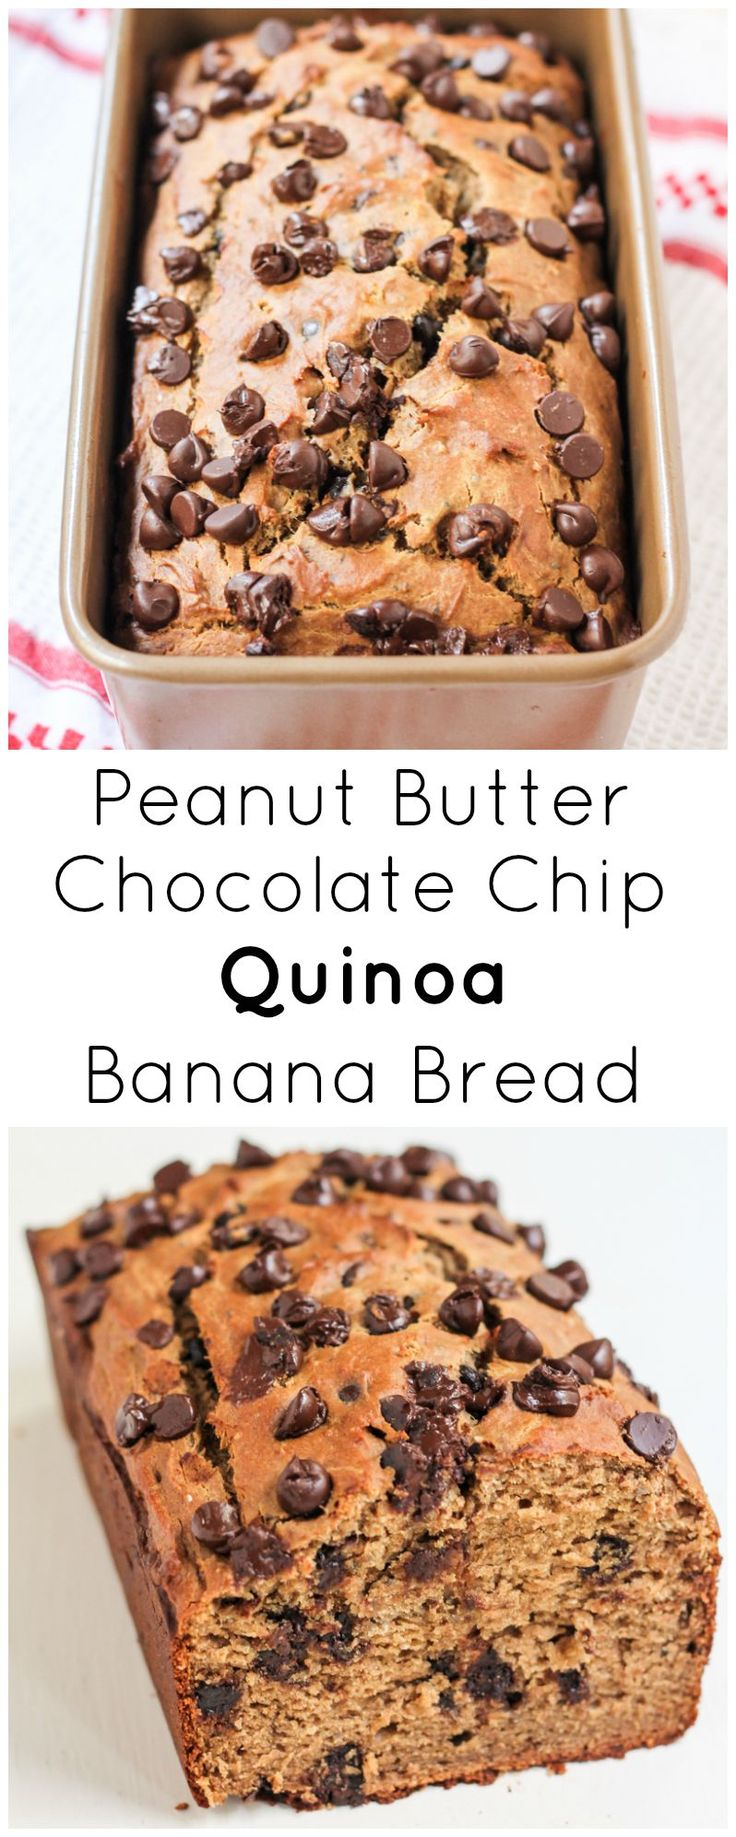 This Peanut Butter Chocolate Chip Quinoa Banana Bread is packed with peanut butter flavor and studded with chocolate chips. No butter, oil, dairy and made with nutritious gluten free quinoa & oat flour!